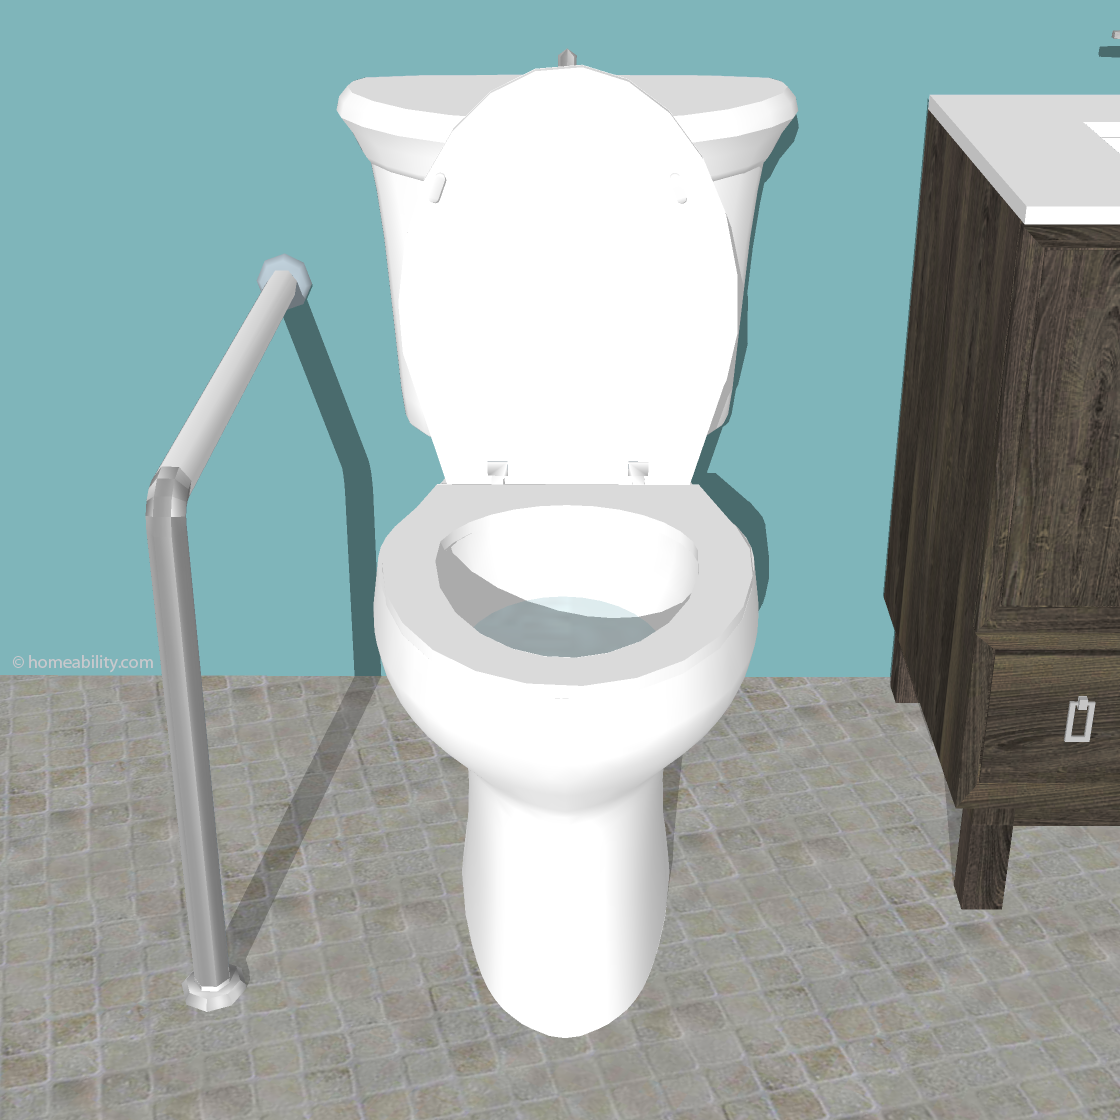 Toilet Rails: Which Type is Best? | homeability.com